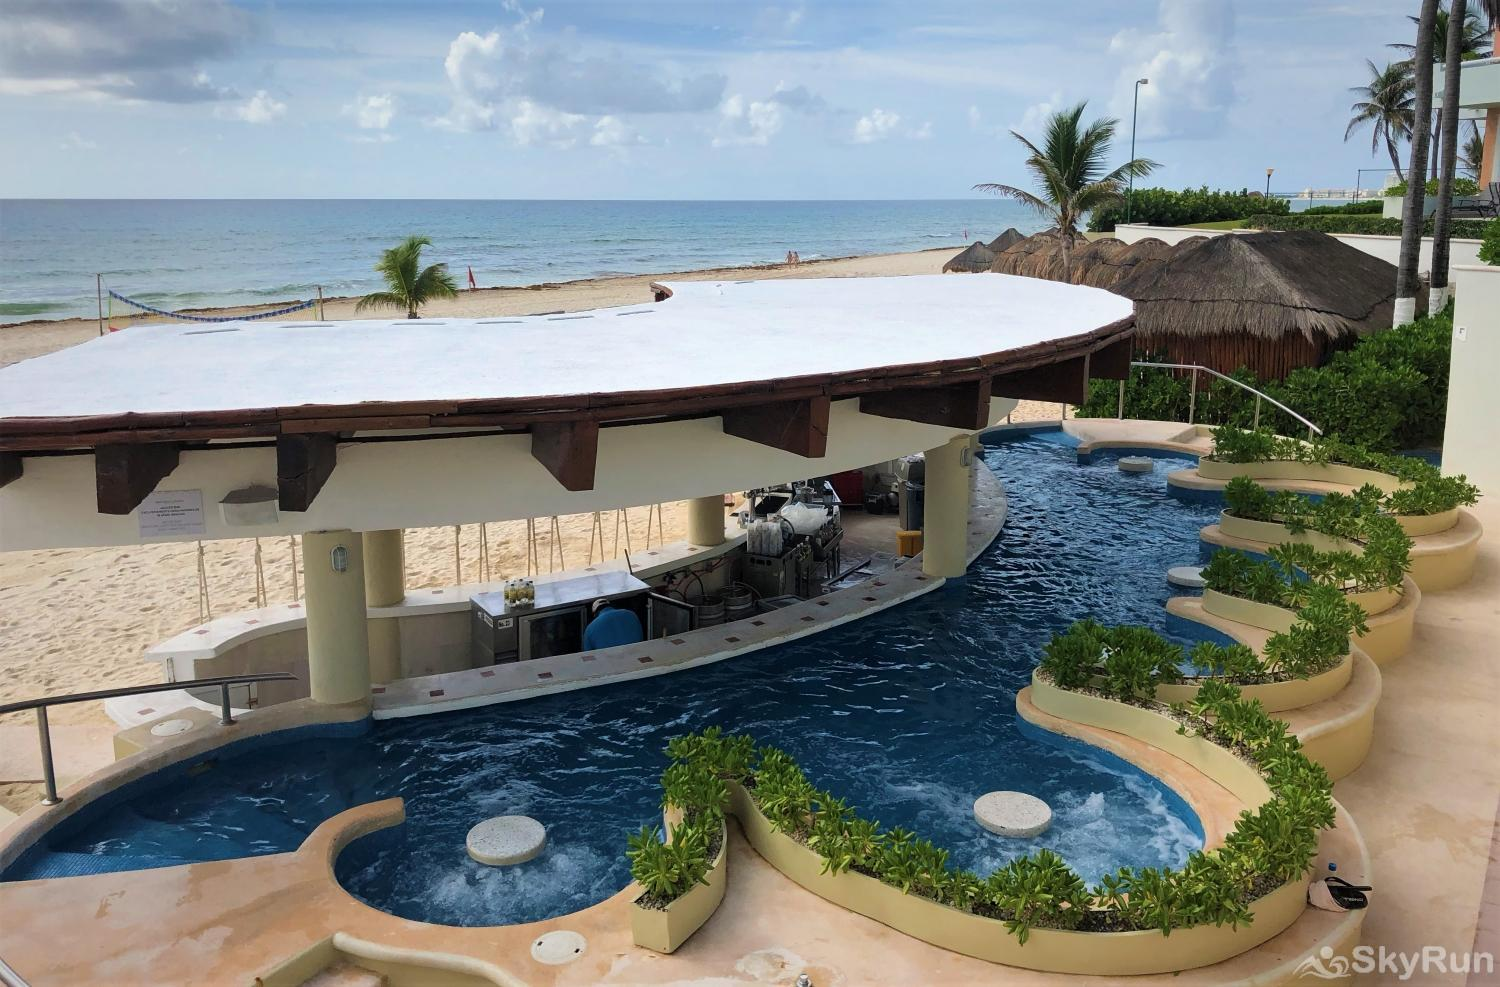 Best Beachfront Private Villa , 4Bdr | Omni Cancun Hotel and Villas PRME location Resort Kinich Villa 33 One of 4 pools!